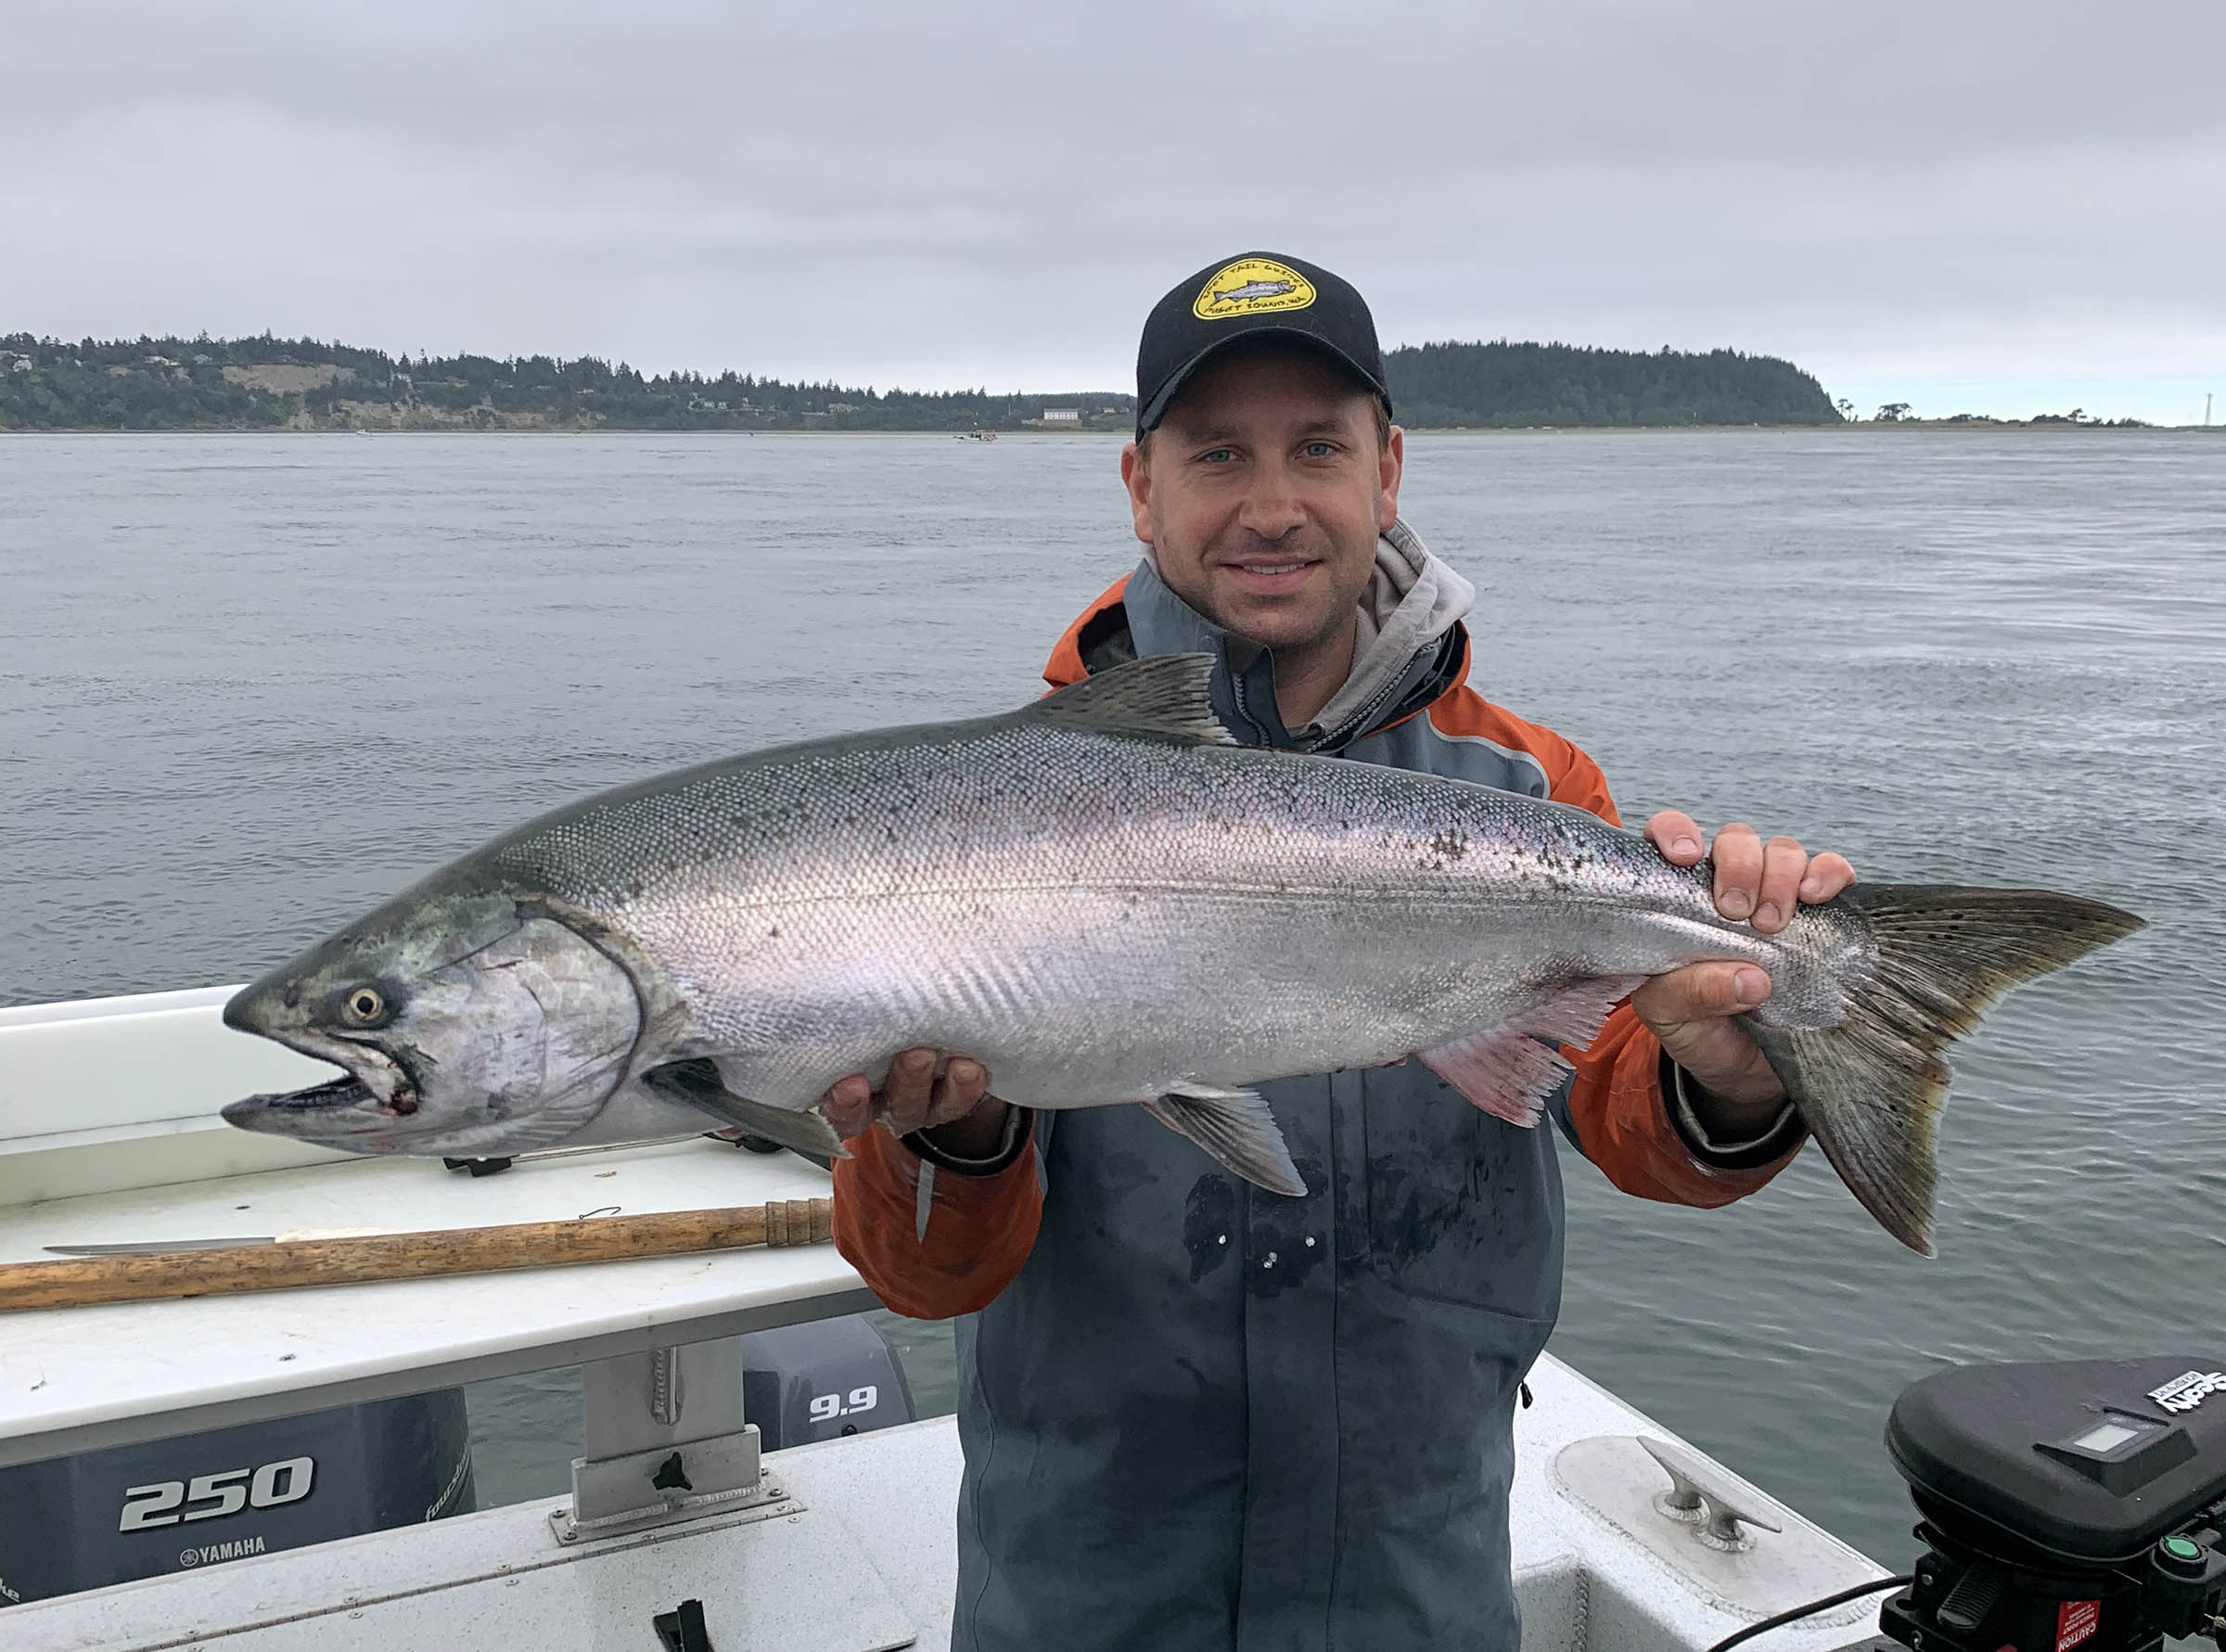 Puget Sound Mid Channel Fishing Spots